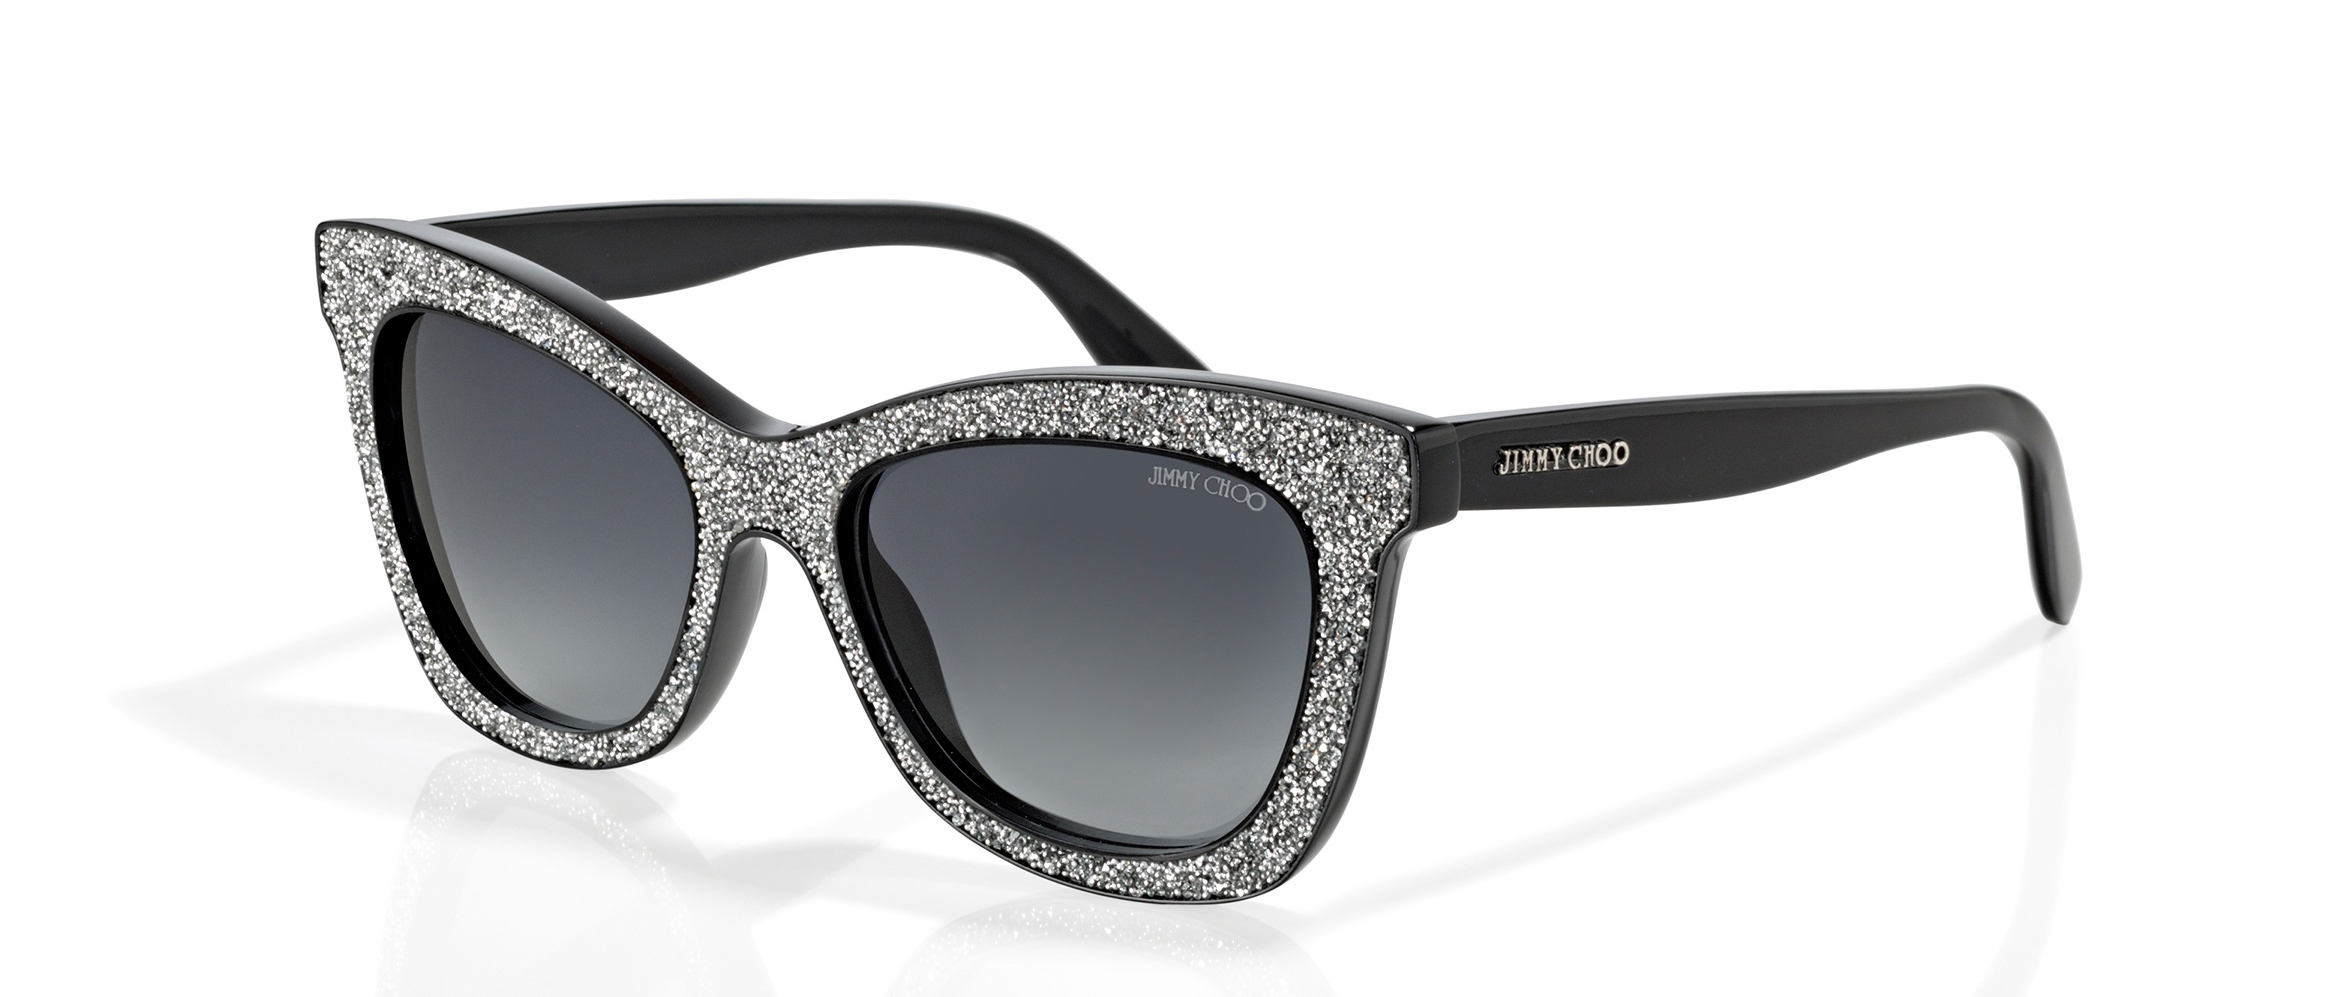 9b2bfbc69c00 With the Jimmy Choo sunglasses with small Swarovski crystals nobody needs  sparkling eyes